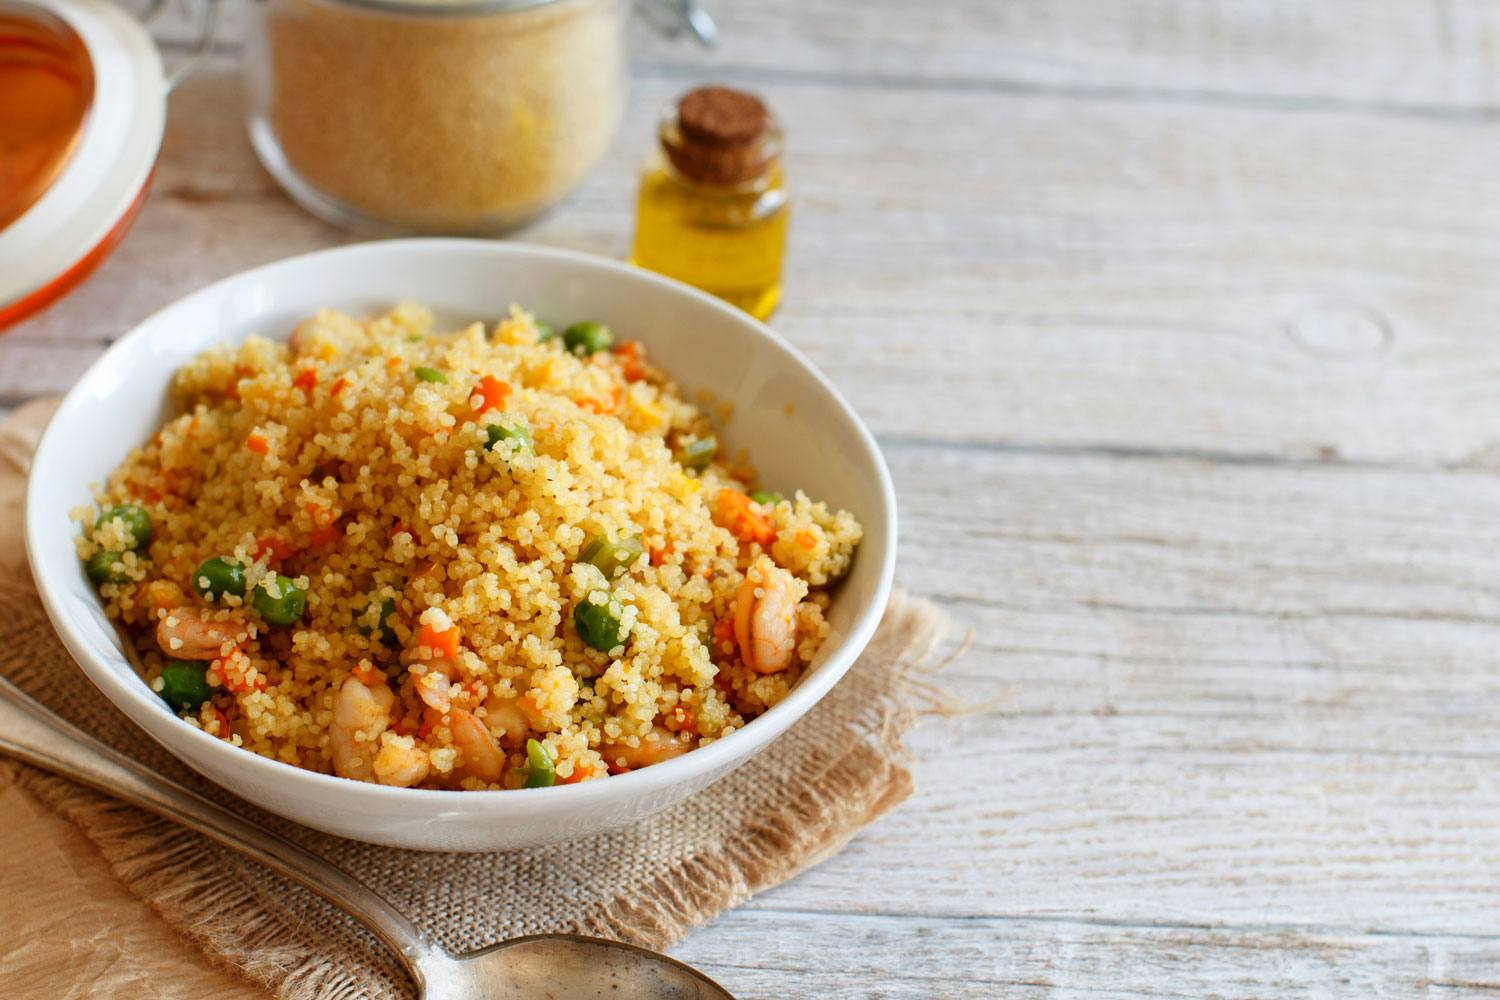 Couscous with shrimps and vegetables, served in a bowl